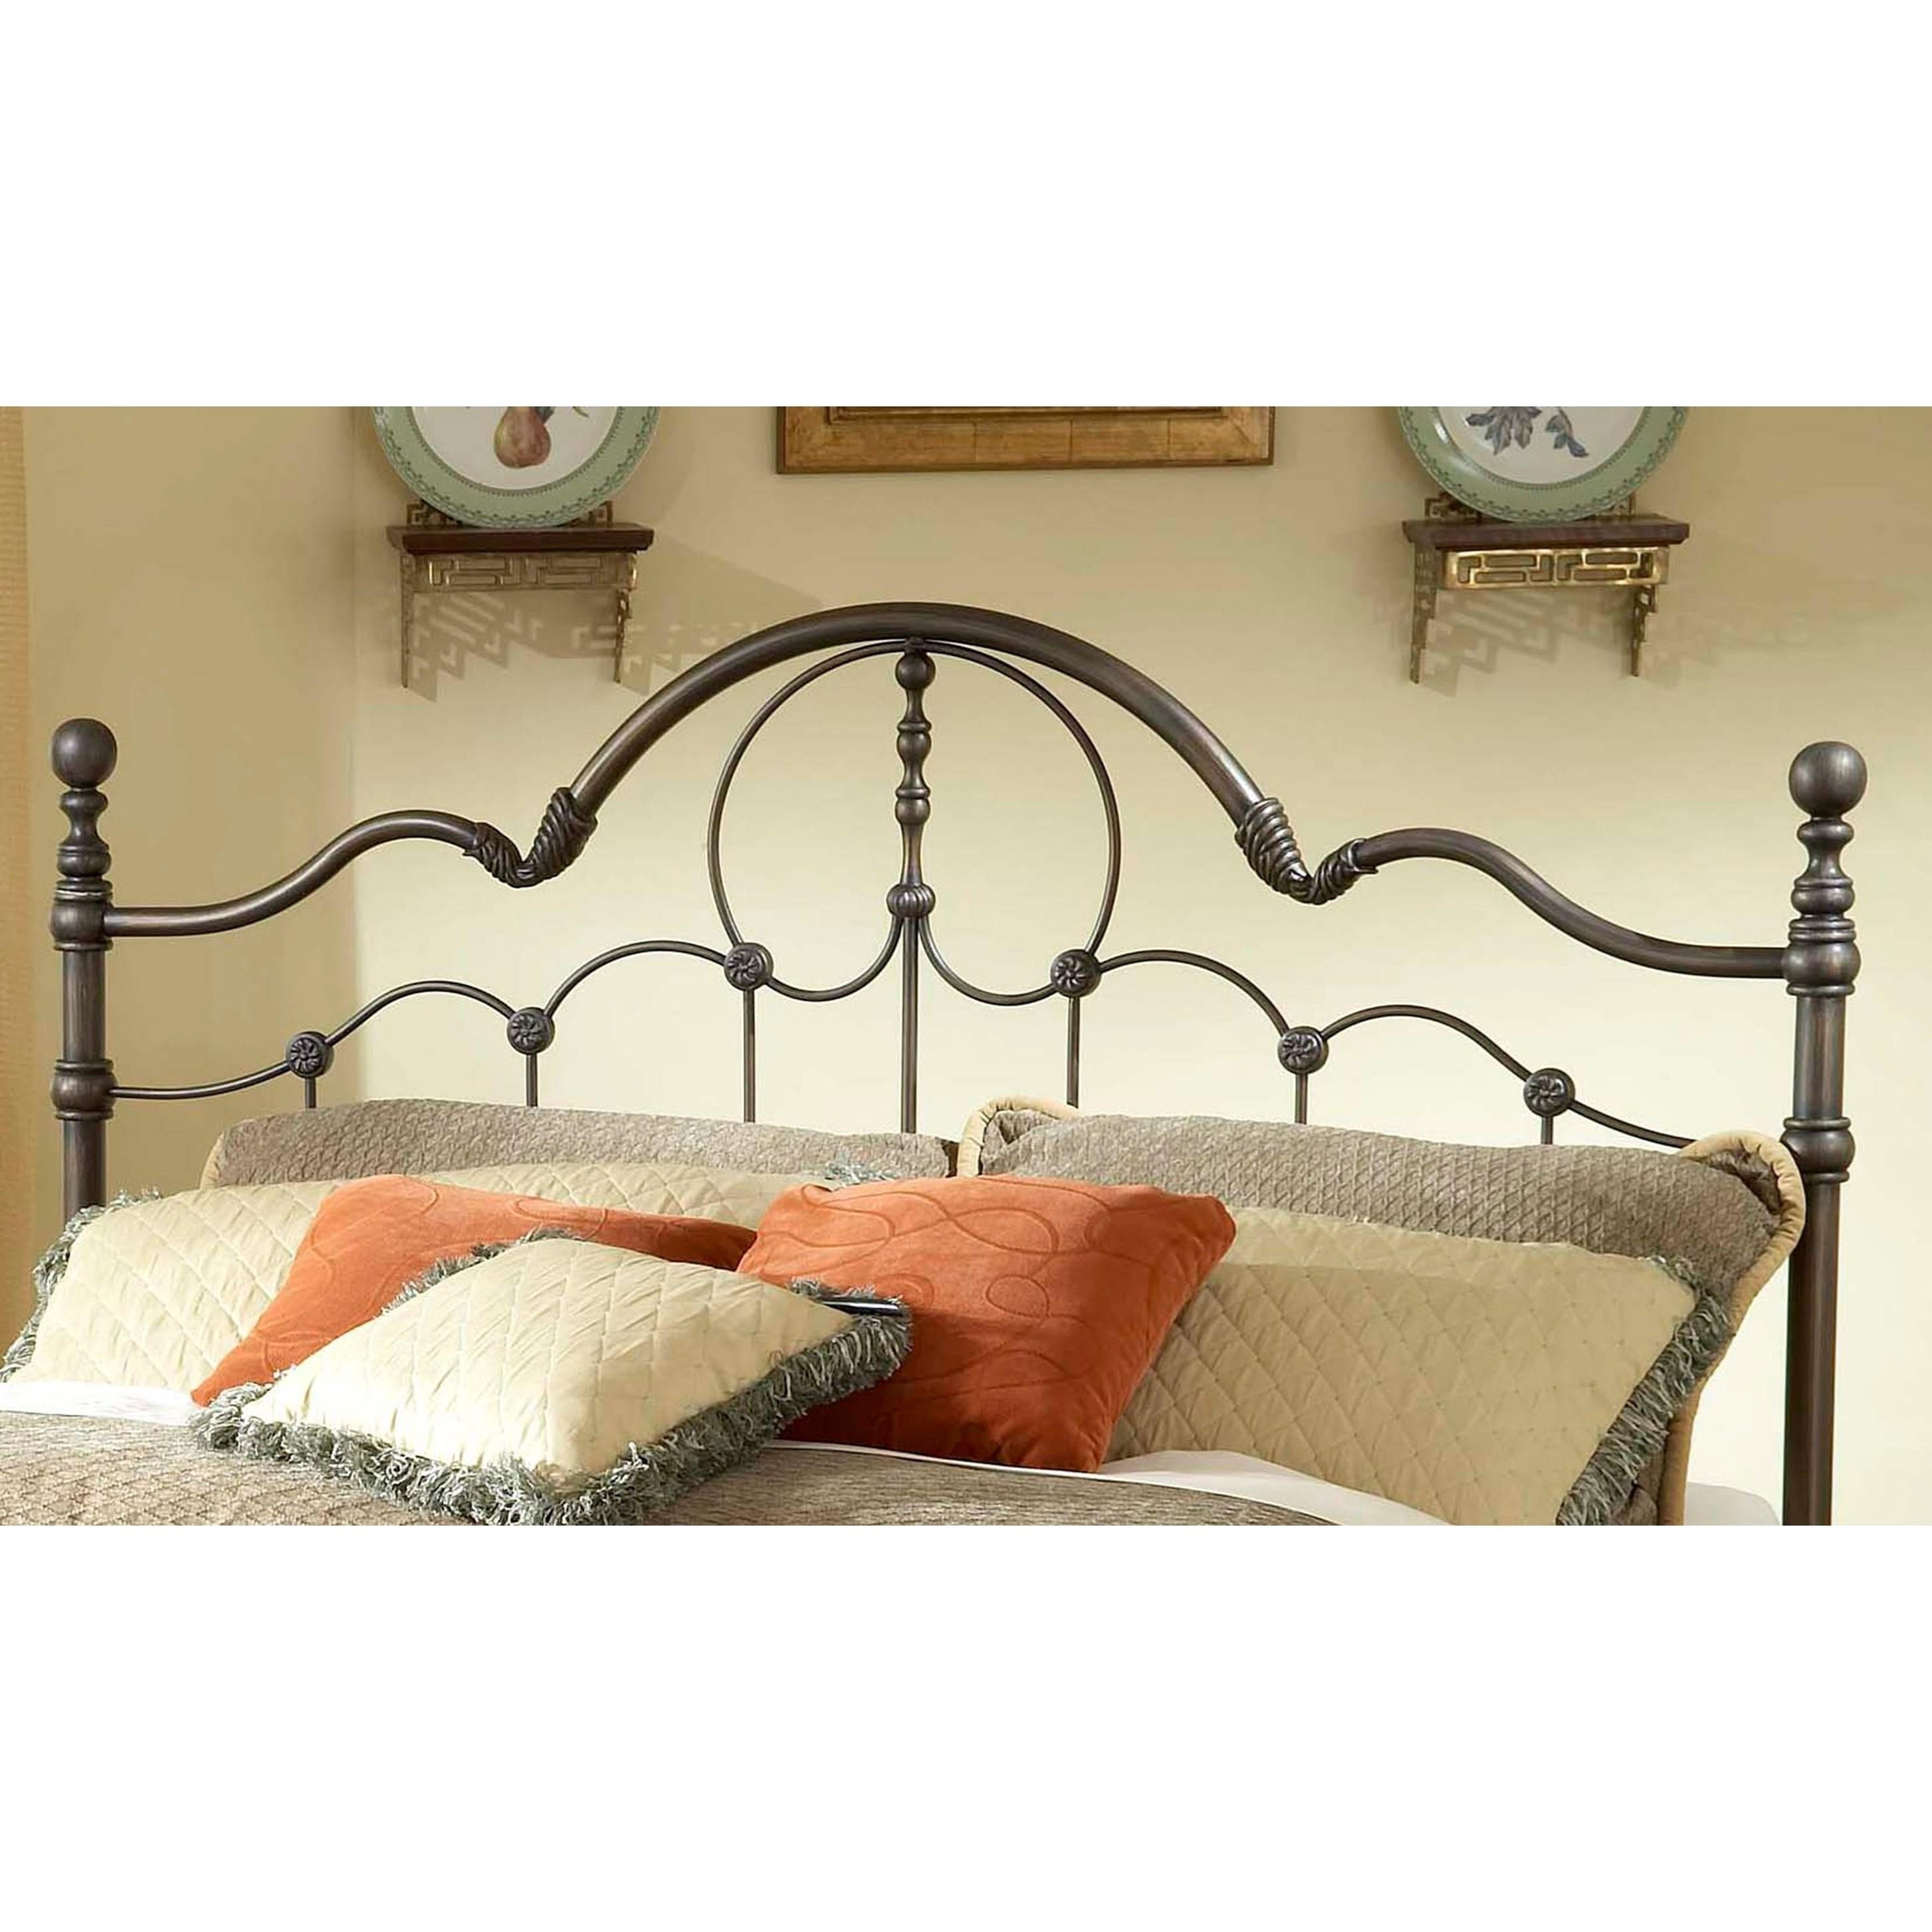 Hillsdale Metal Beds Full/Queen Venetian Headboard - Item Number: 1480HFQR